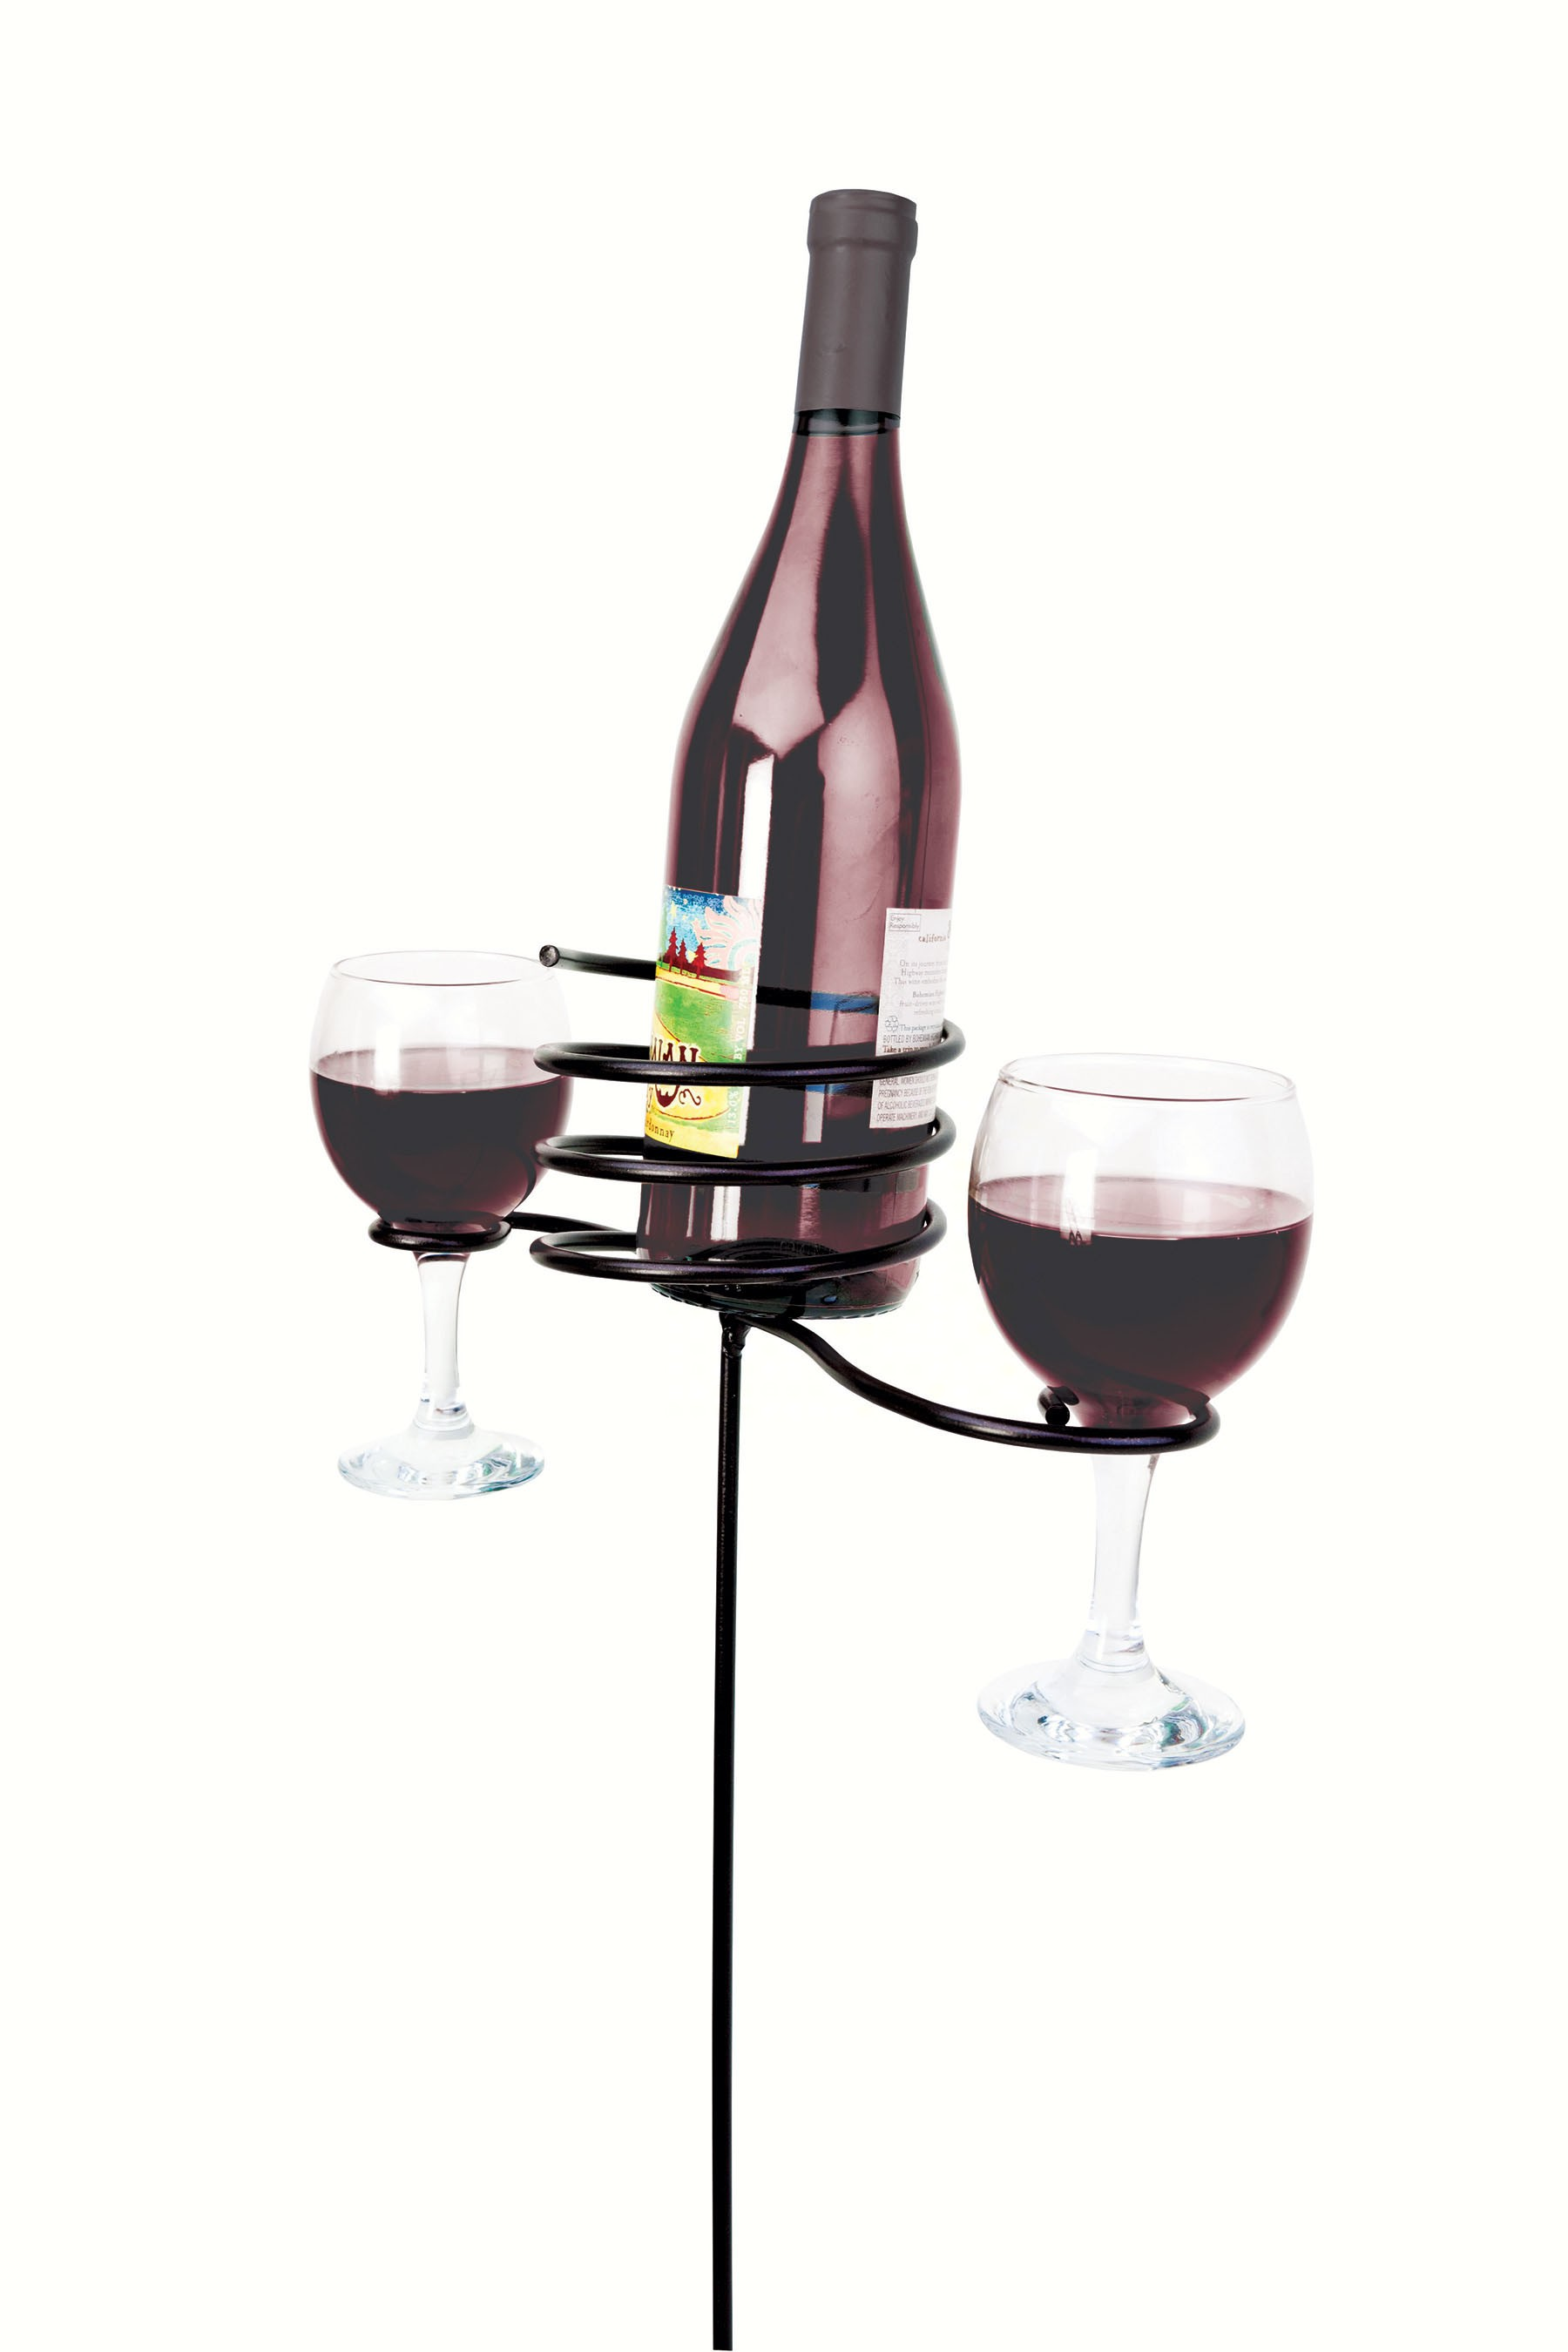 Wine & Bottle Glasses Caddy